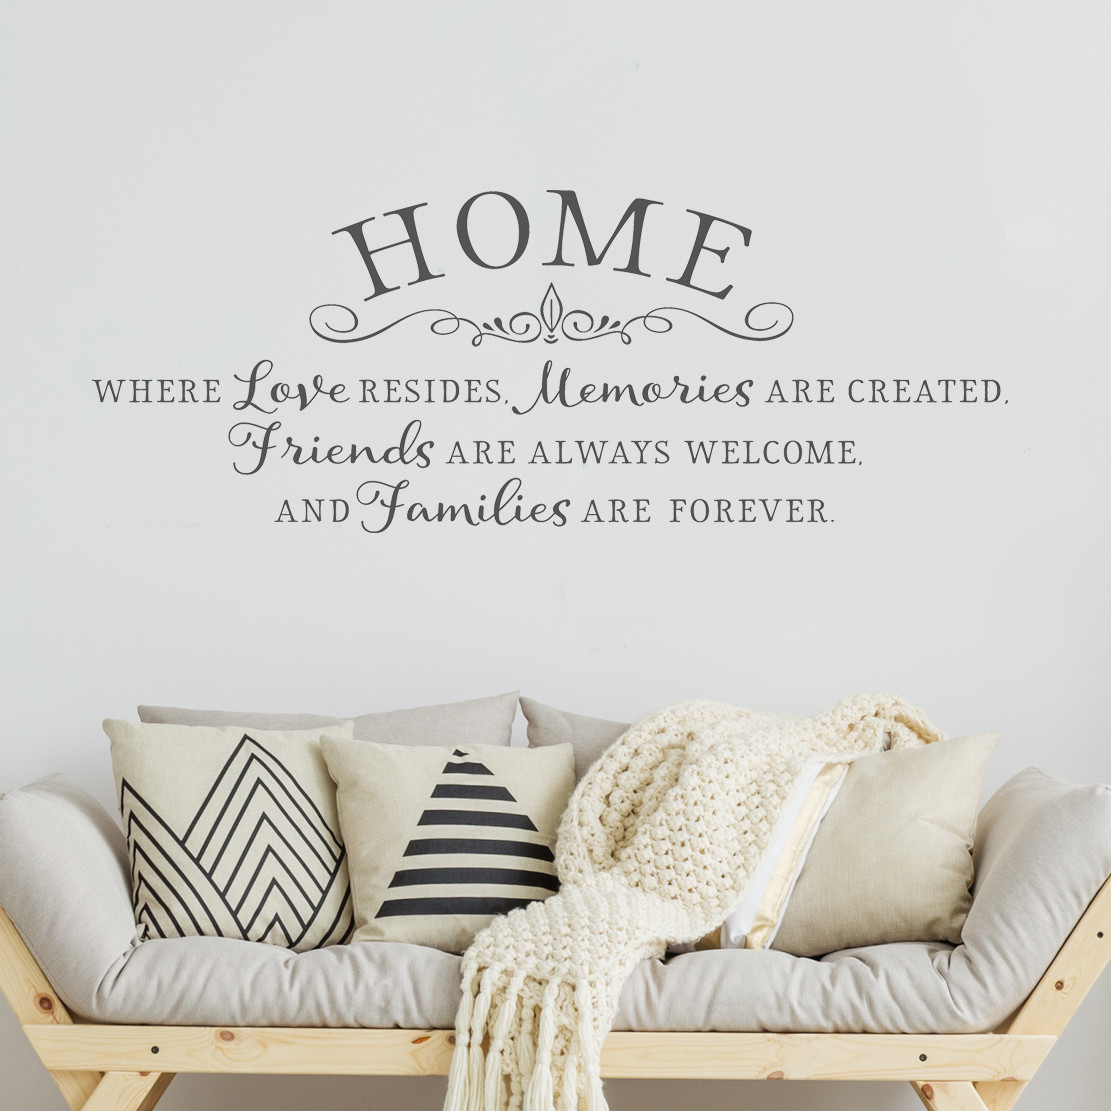 Home is where love resides - Inspiring wall decal - home quotes